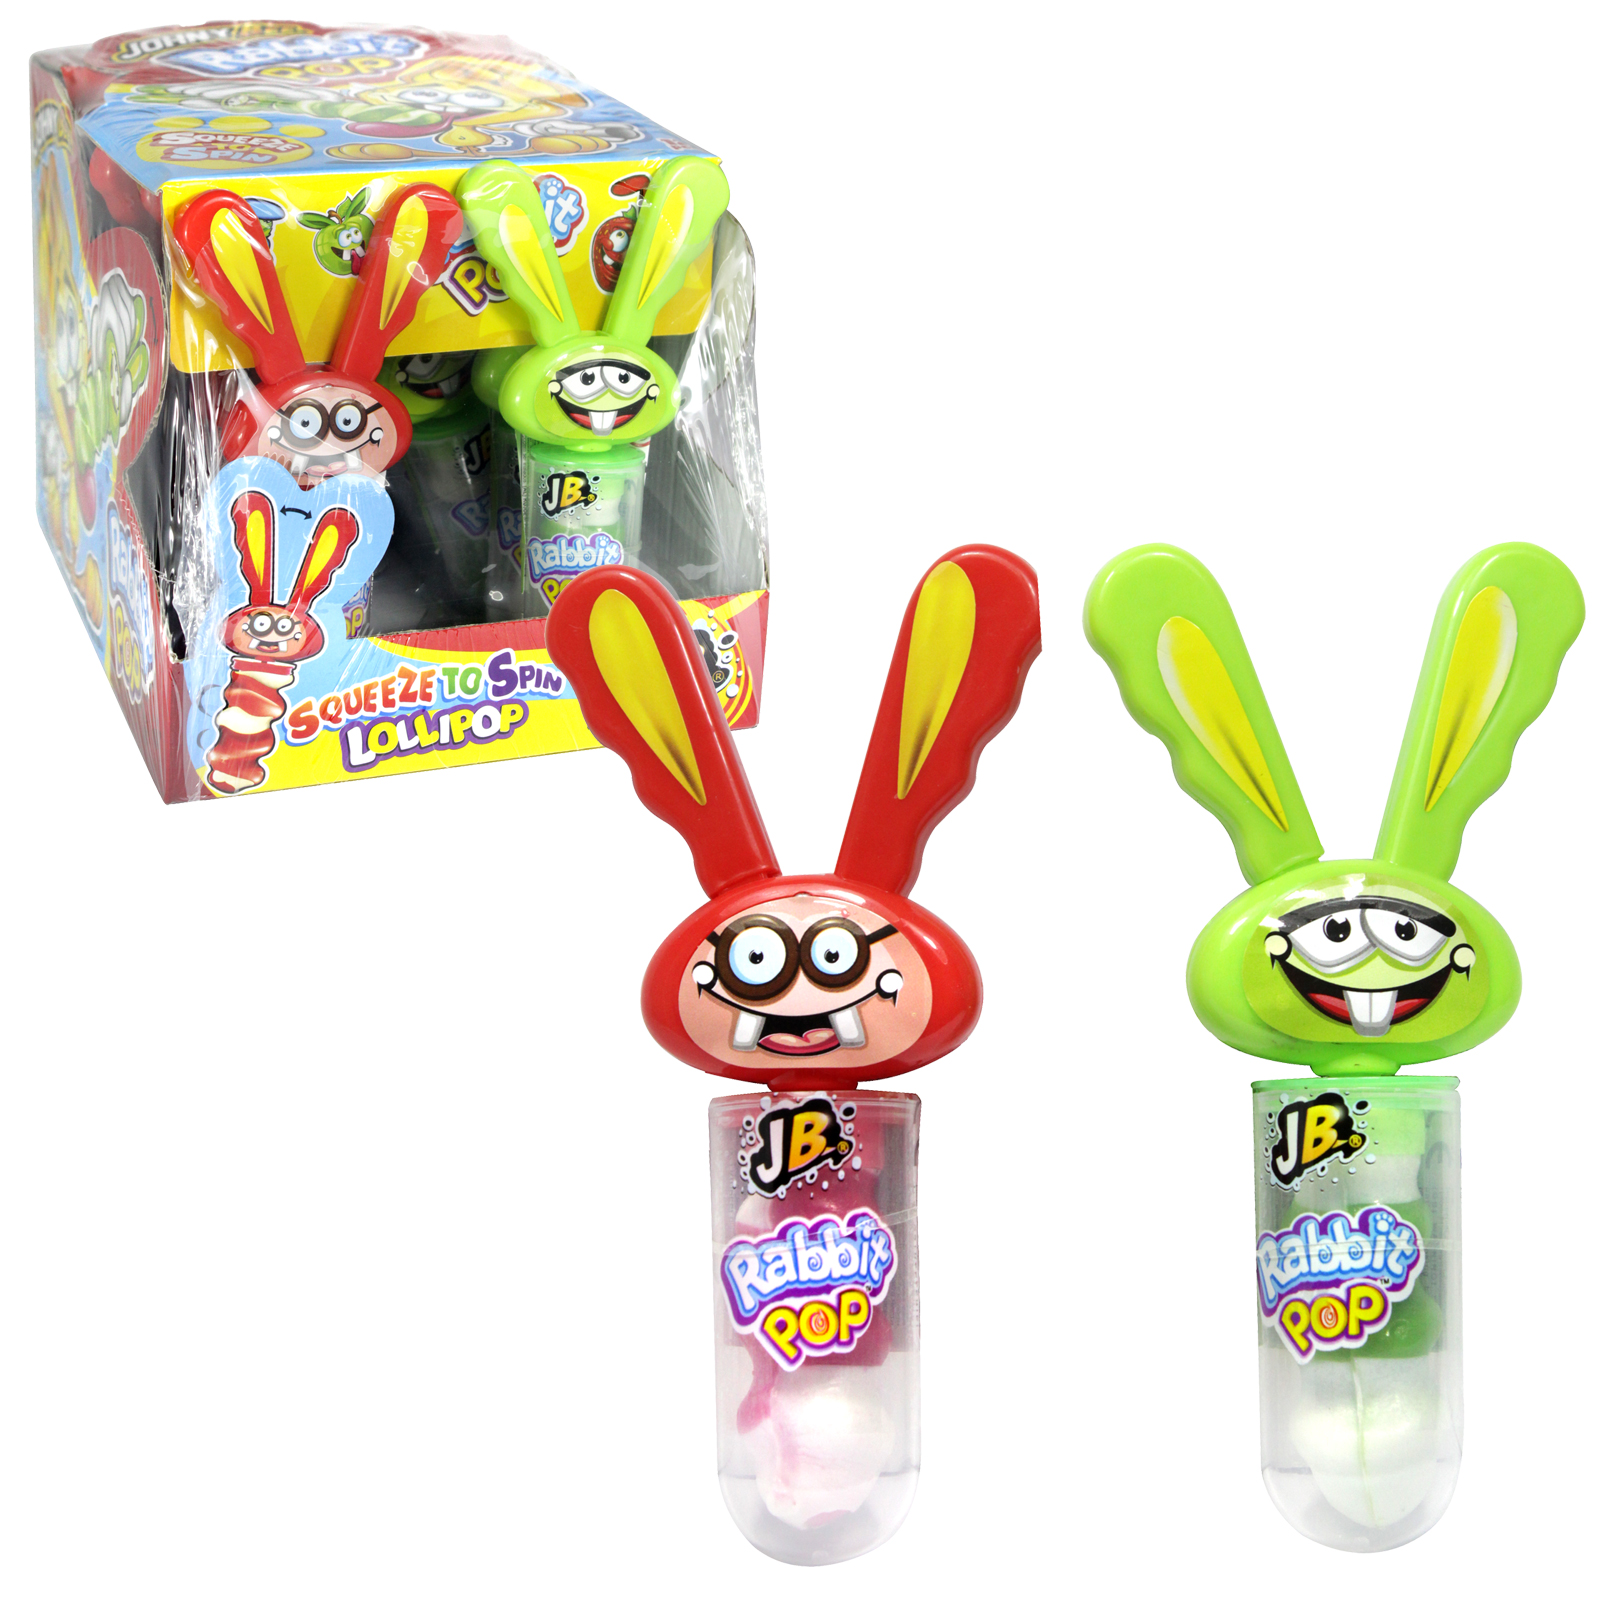 JOHNY BEE RABBIT SQUEEZE TO SPIN LOLLIPOP X12PCS